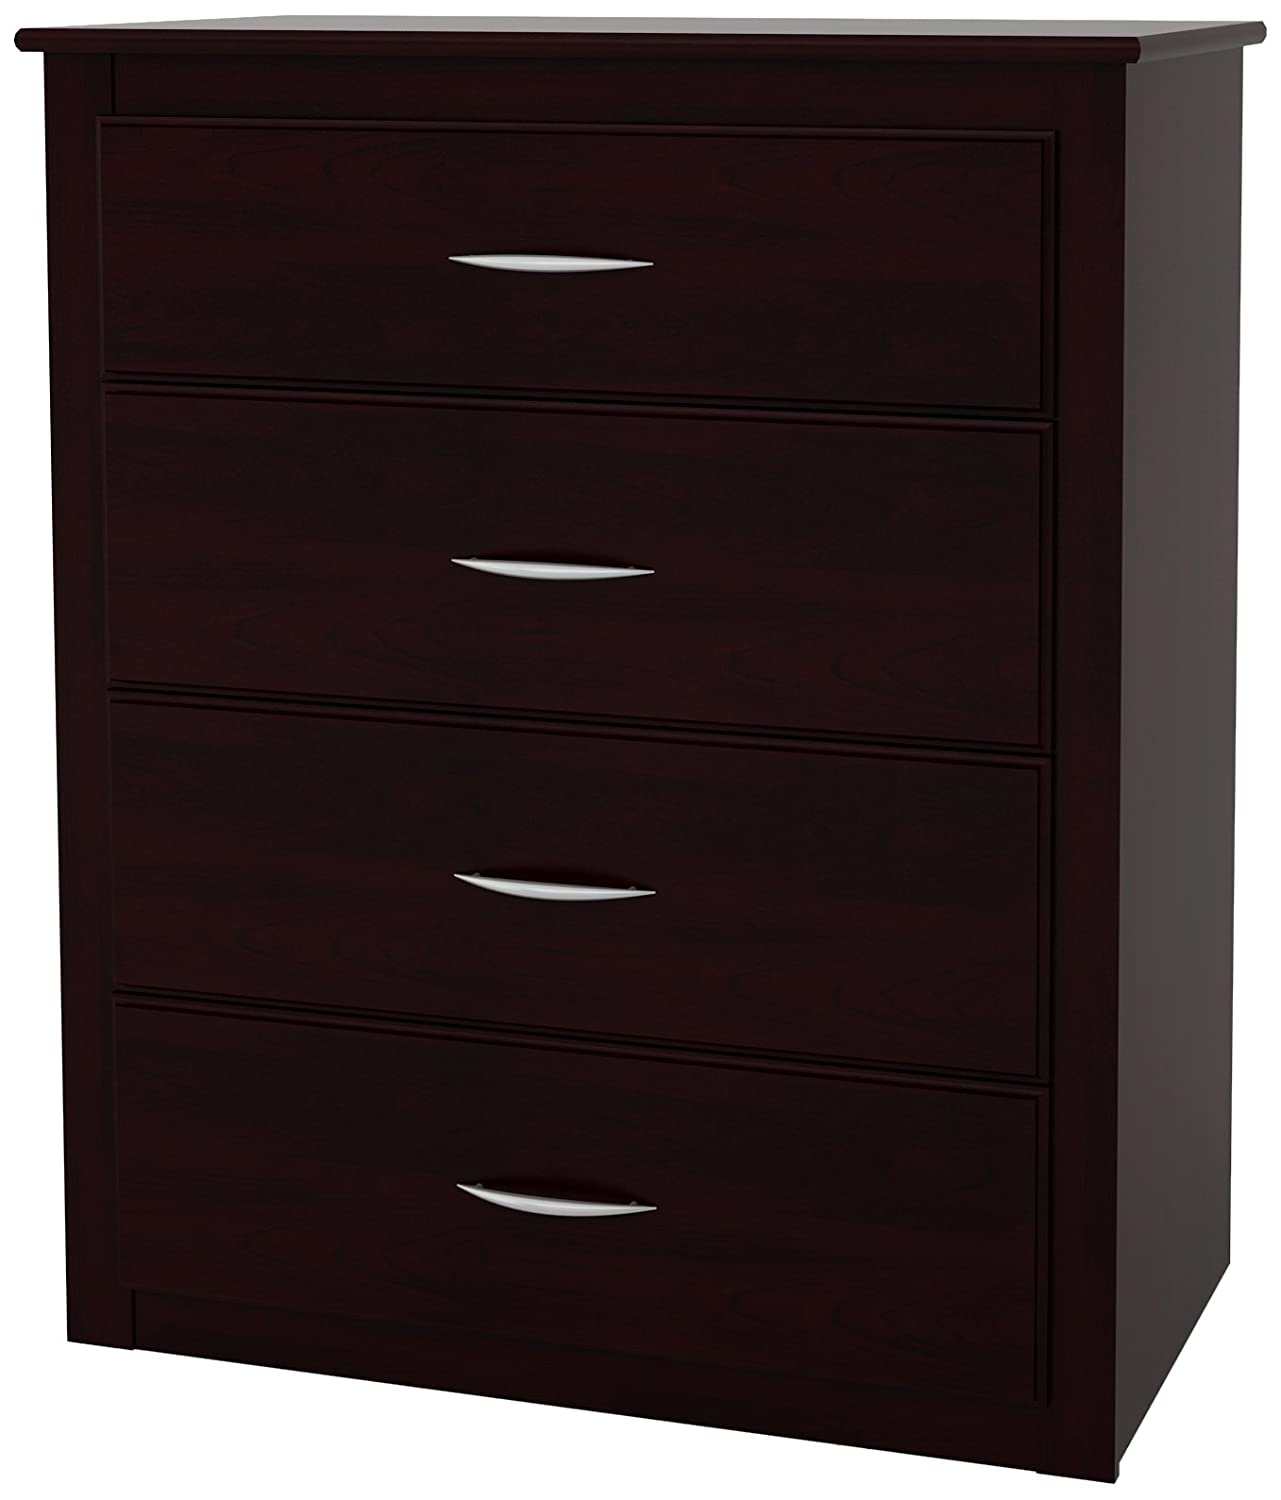 Ameriwood 4 Drawer Dresser